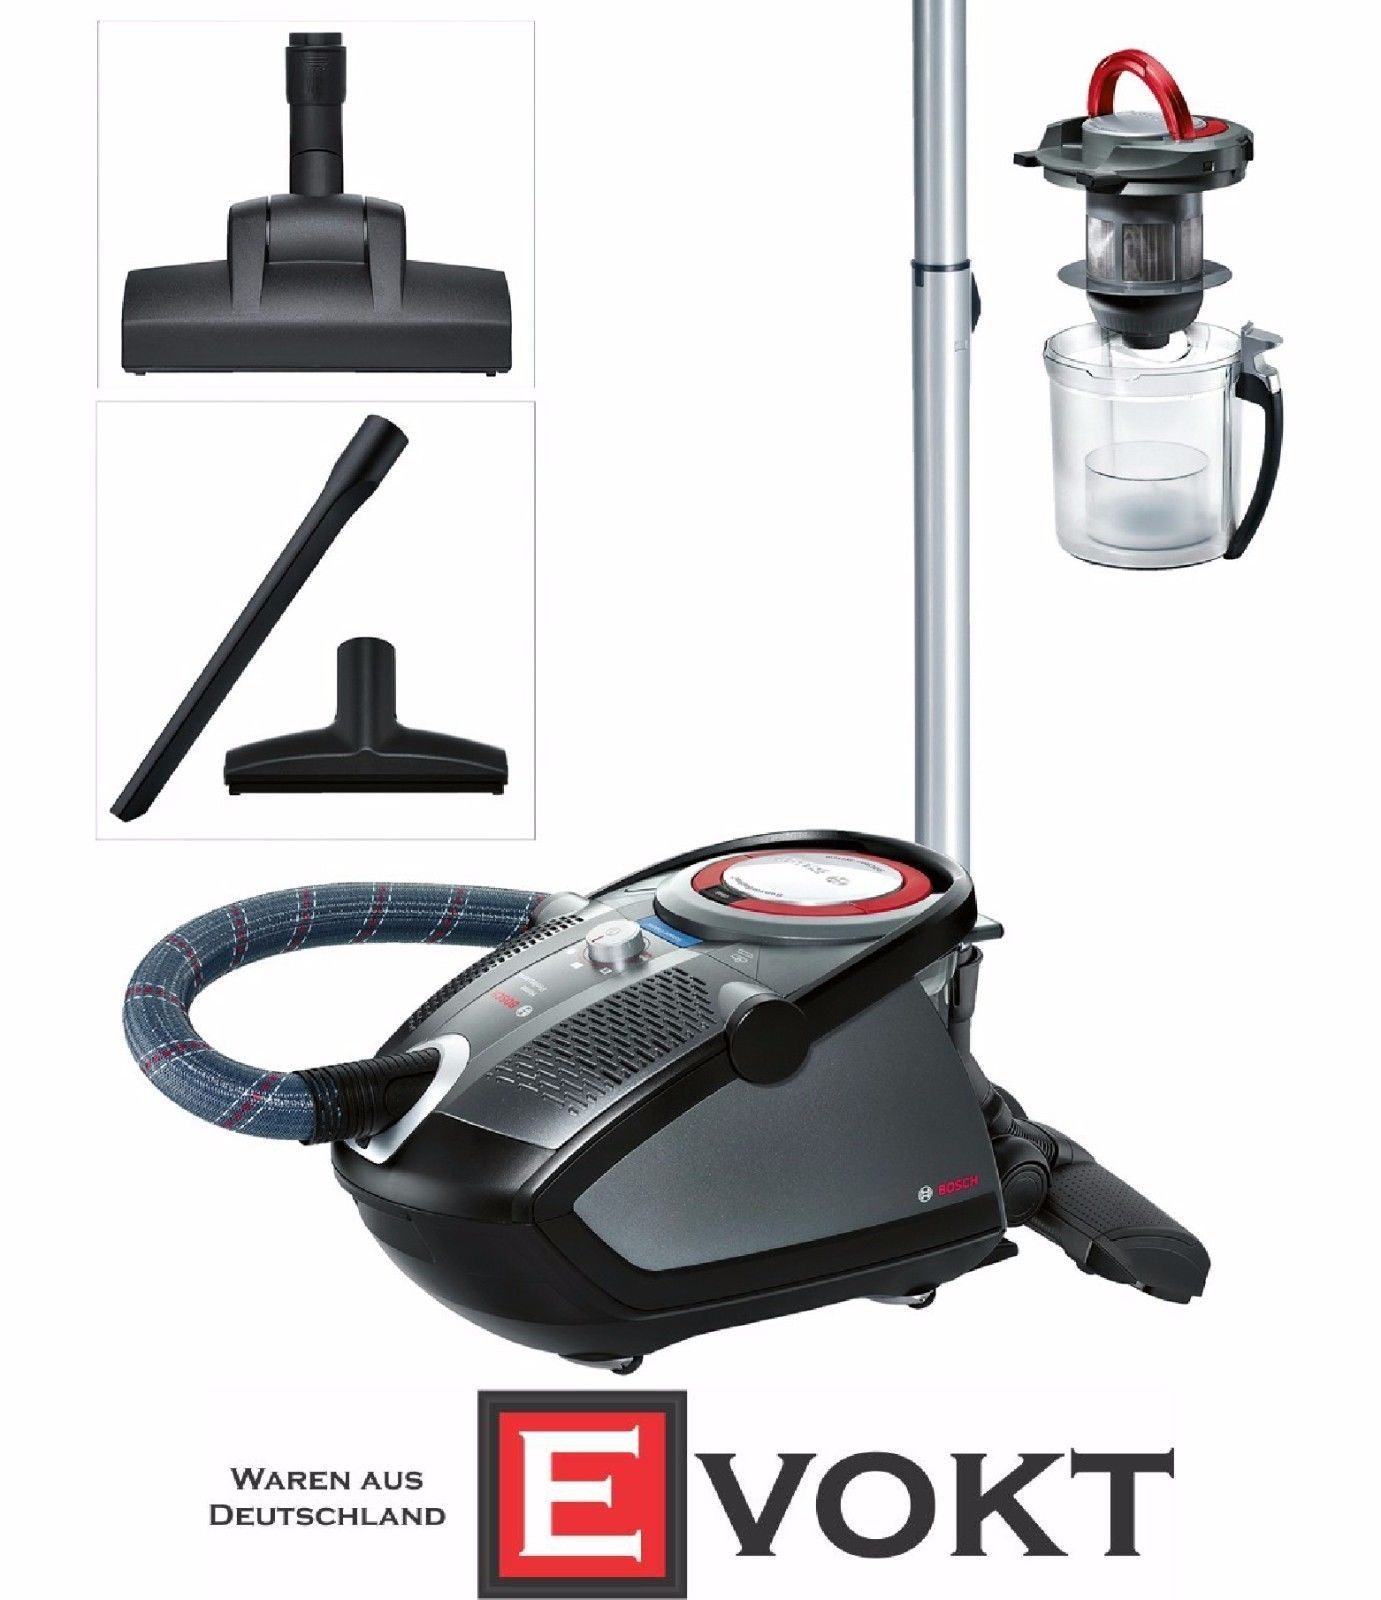 bosch bgs6pro4 roxx 39 x home professional vacuum cleaner. Black Bedroom Furniture Sets. Home Design Ideas